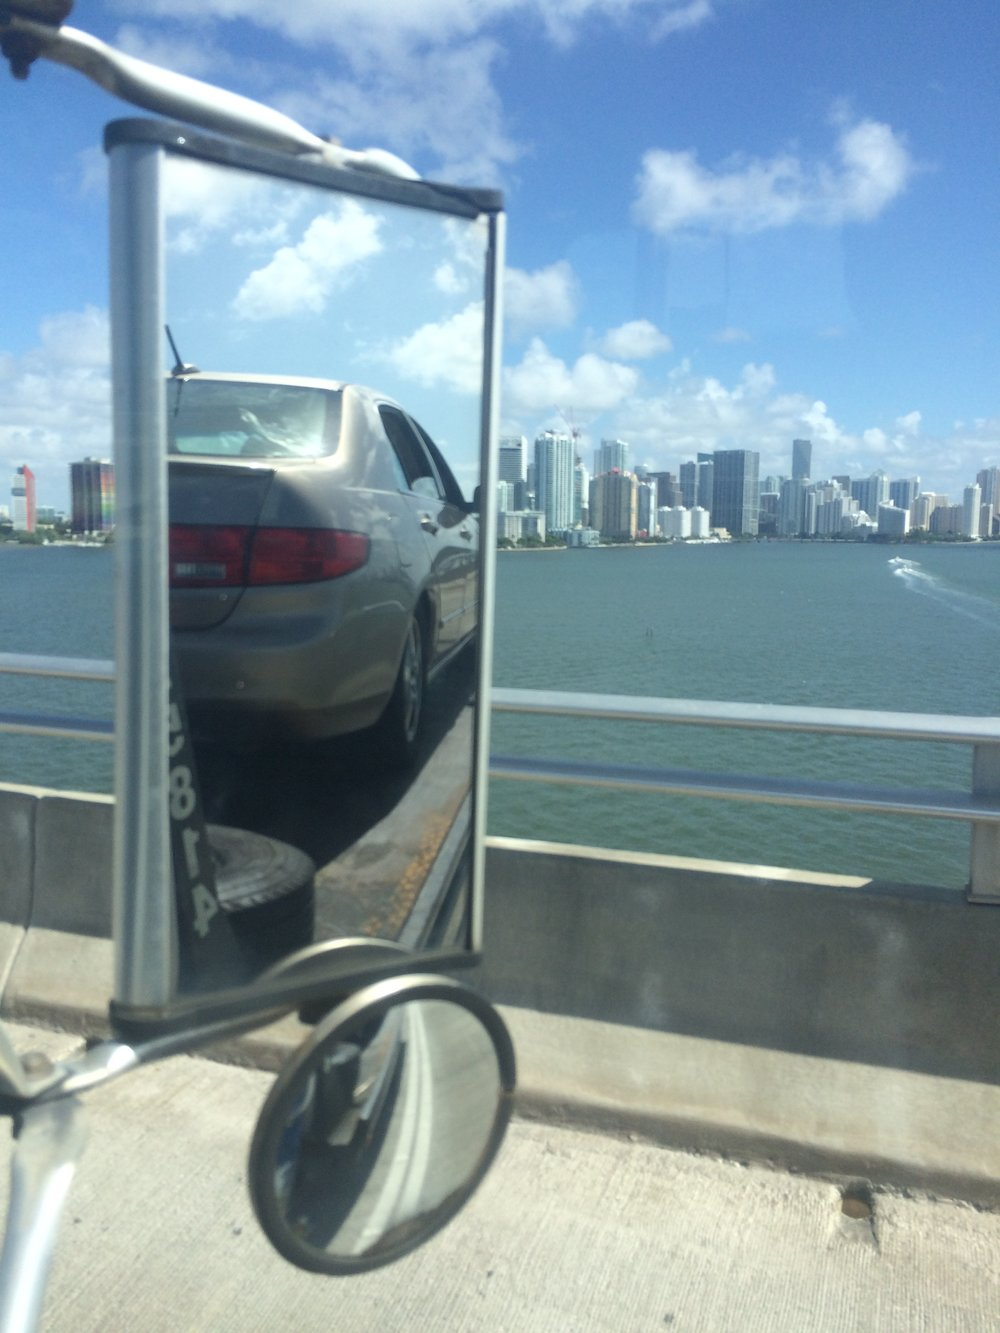 A tow truck carrying my car across the Rickenbacker bridge with Miami skyline in the distance. Does it appear my Honda is driving off the bridge? How do you know it is not?